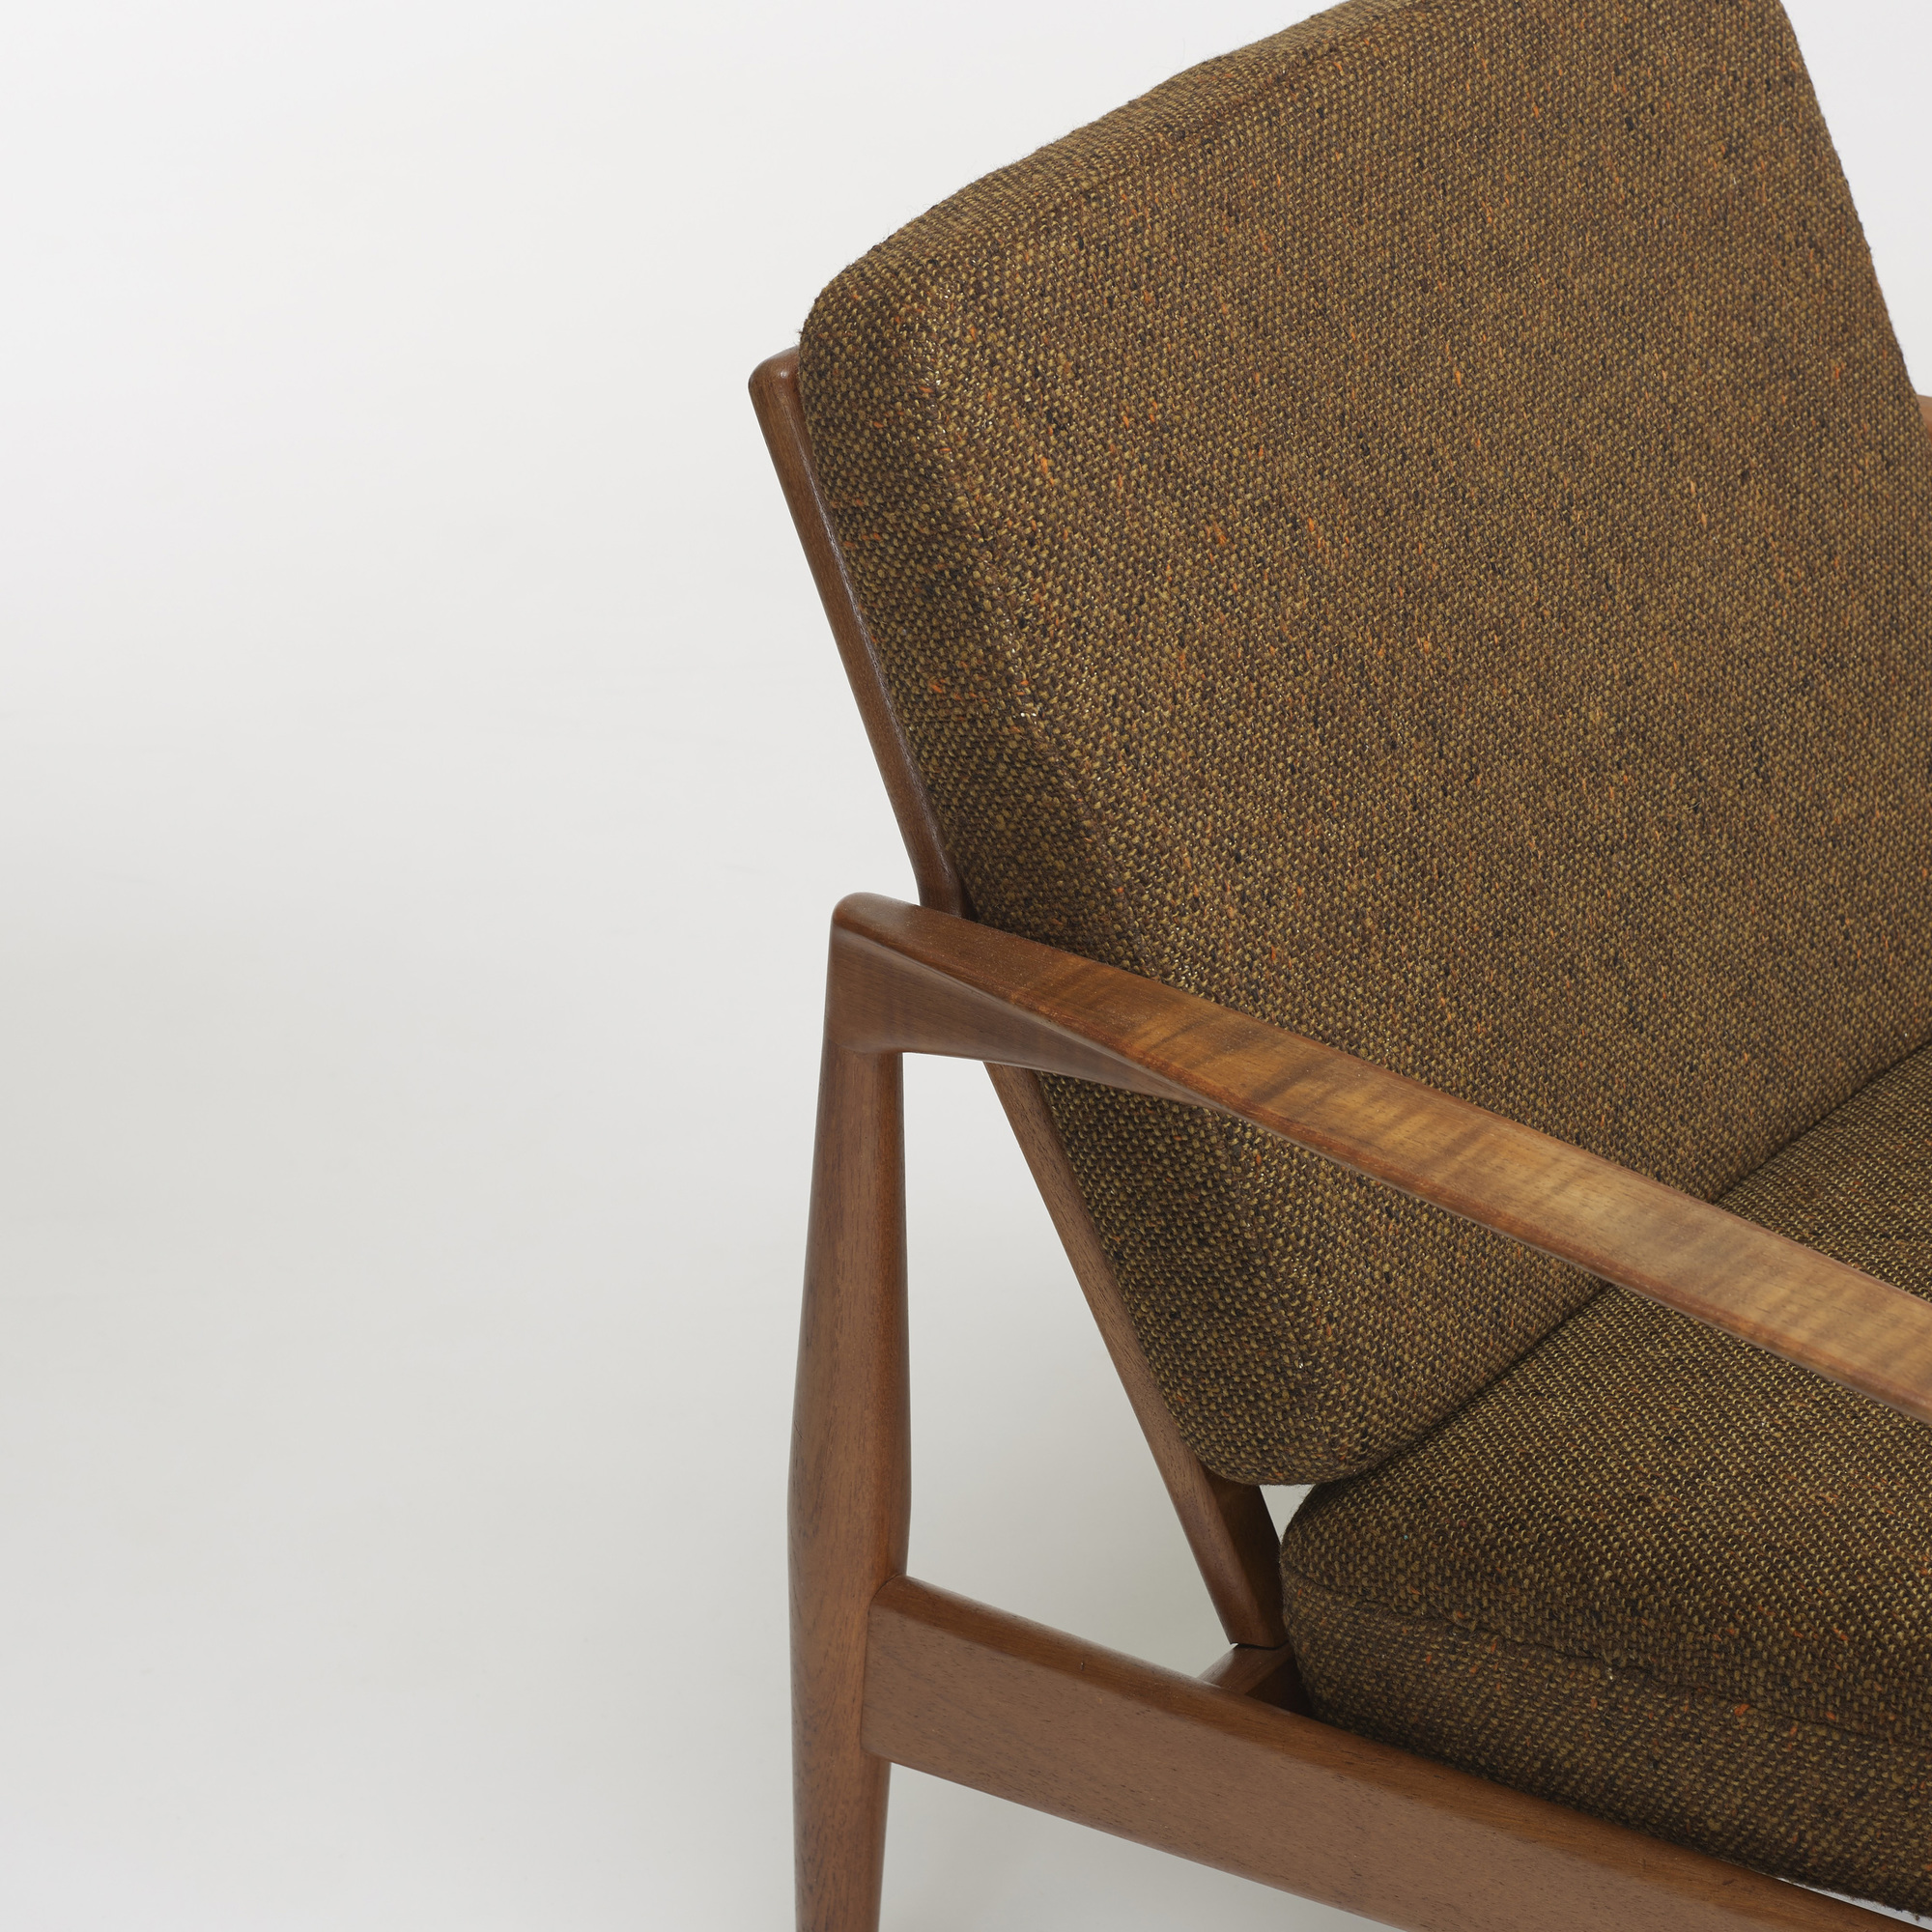 274: Kai Kristiansen / pair of lounge chairs, model 121 (3 of 4)